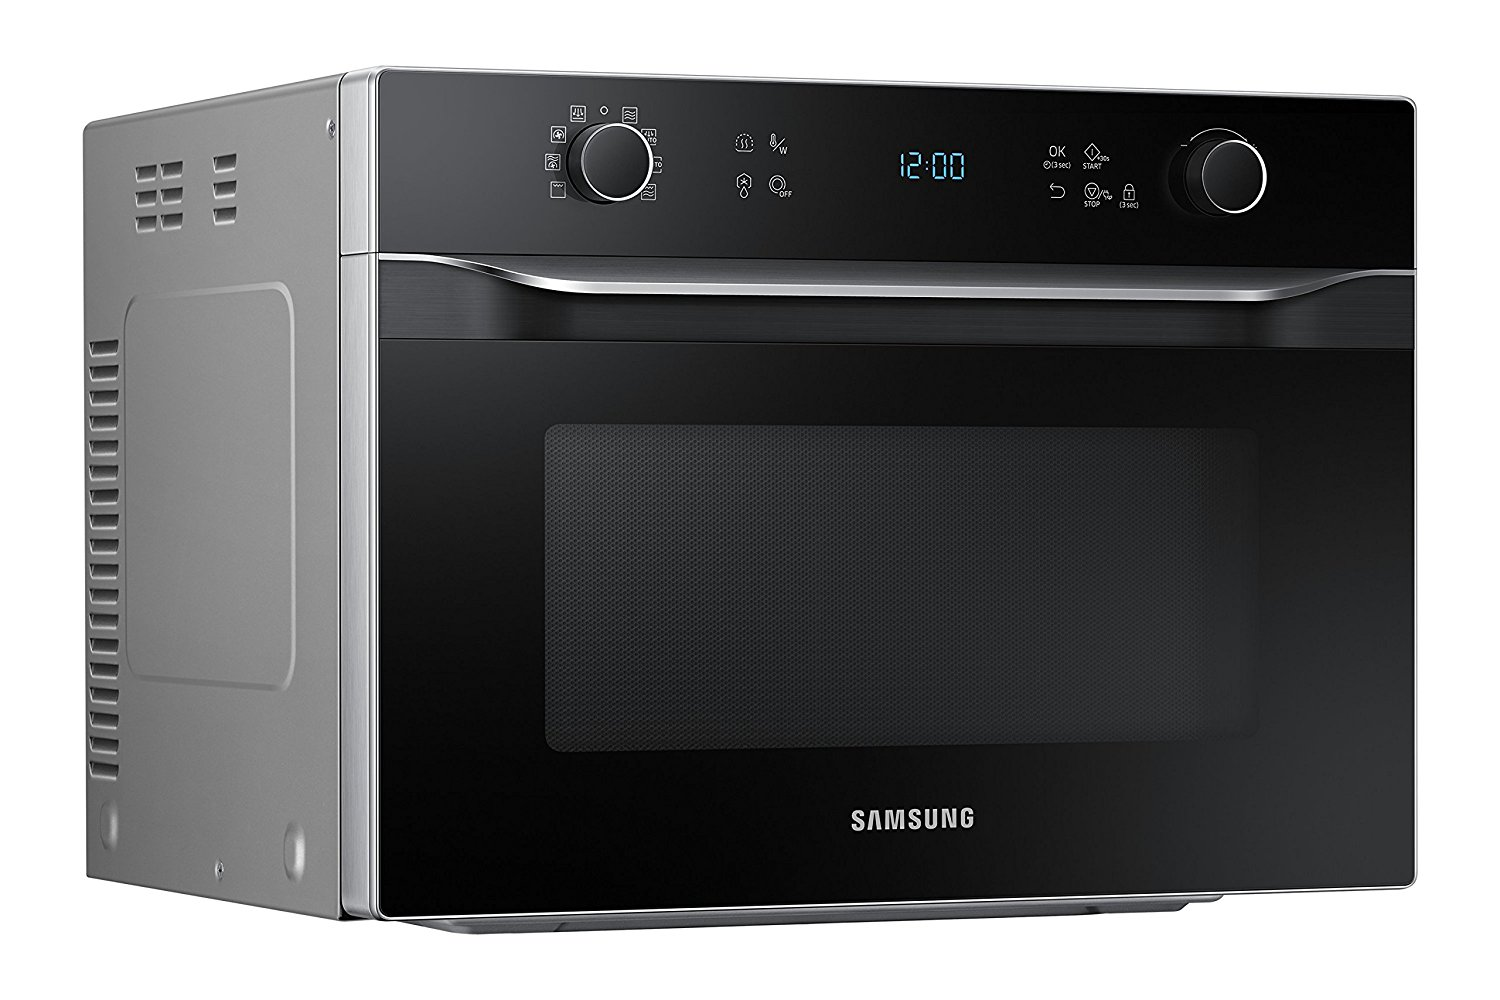 Samsung Black microwave oven